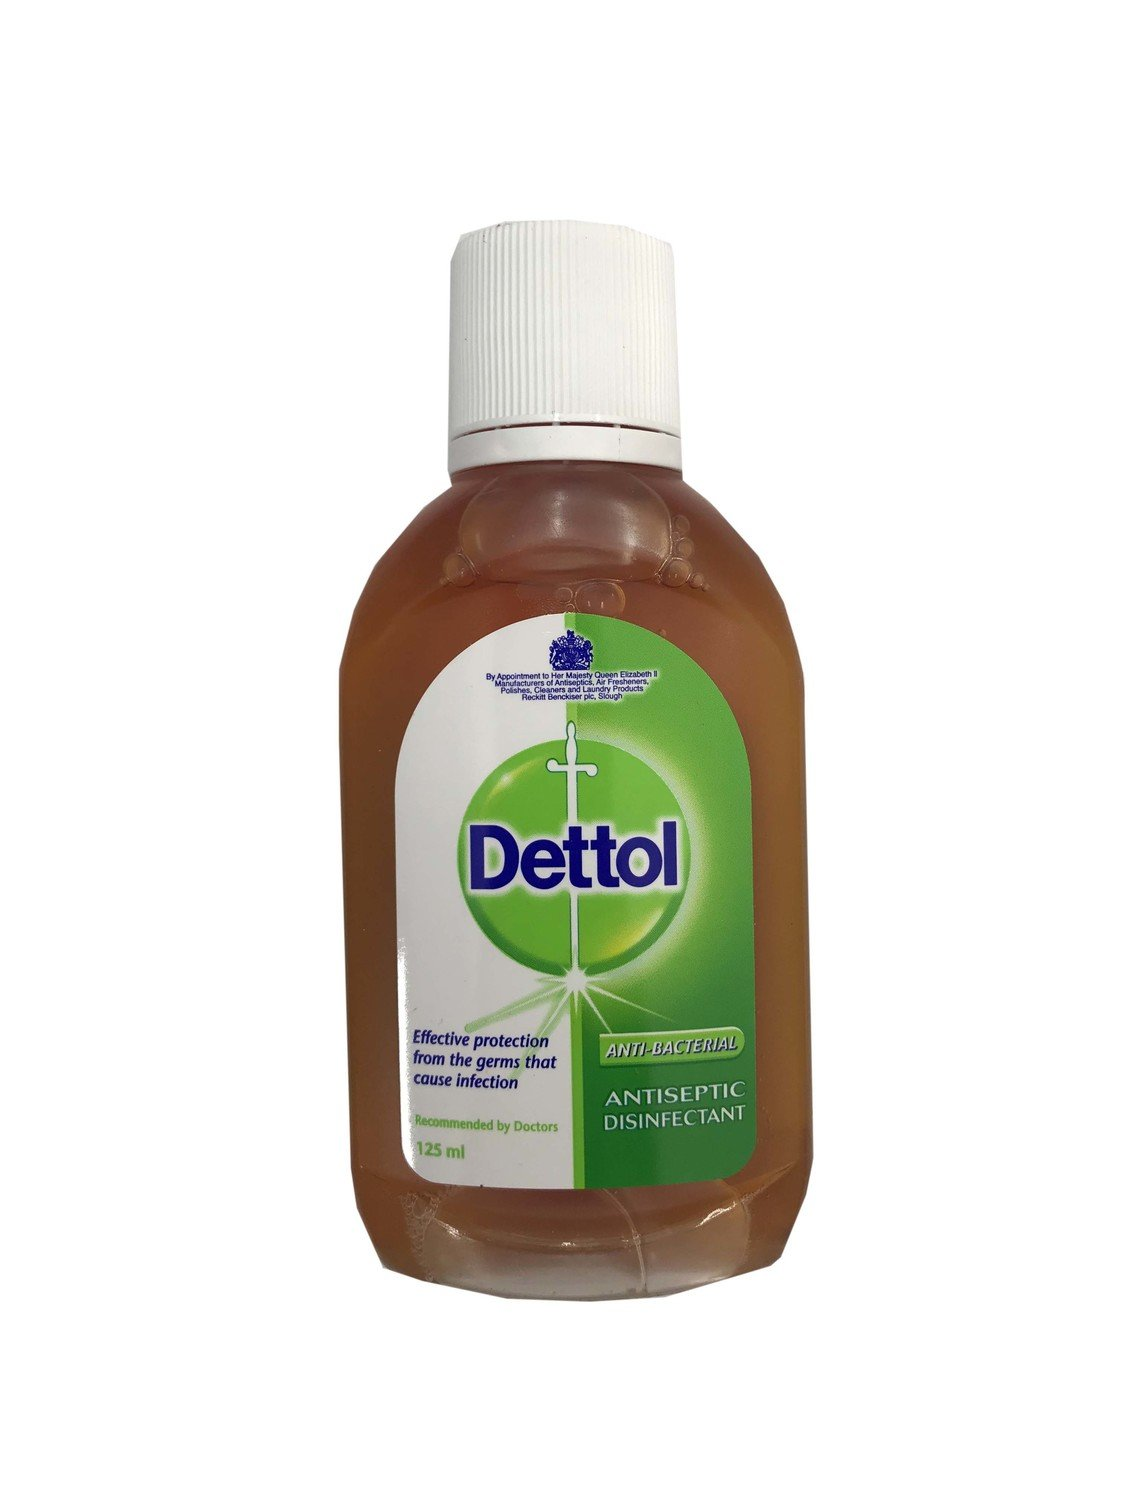 Dettol Aniseptic Disinfection 125ml